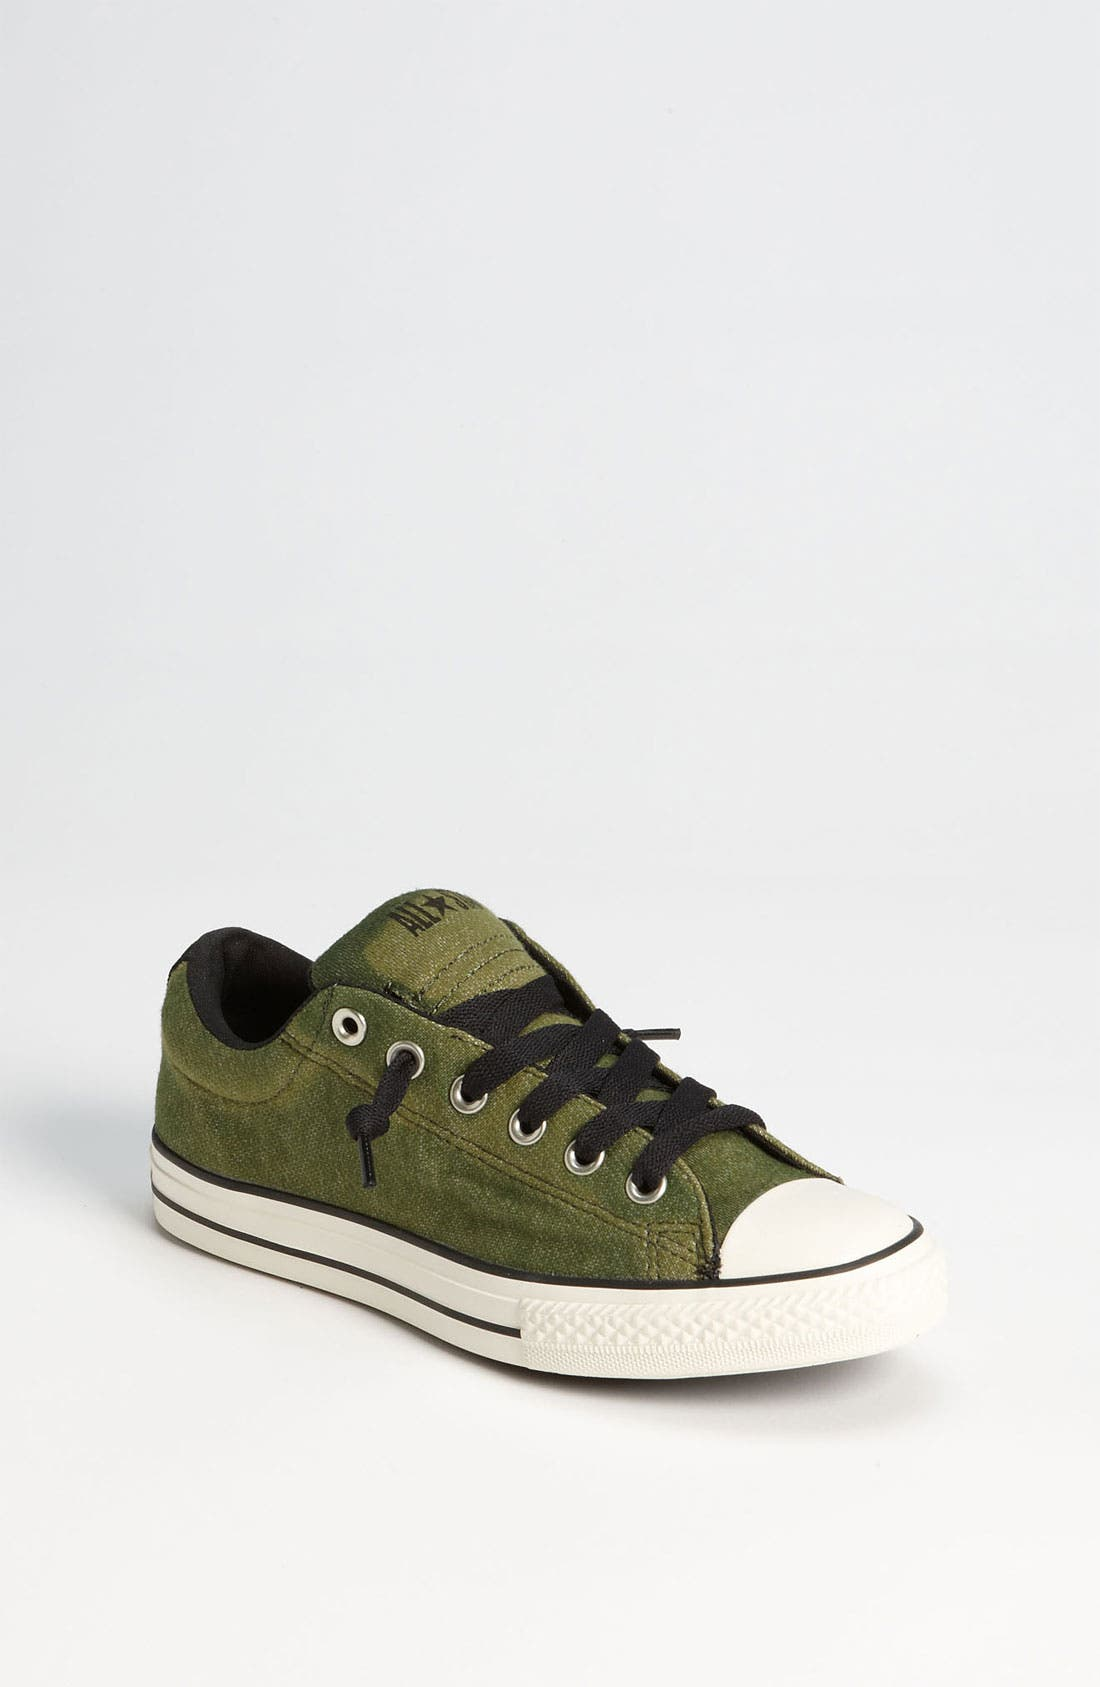 Alternate Image 1 Selected - Converse Chuck Taylor® 'Street' Sneaker (Toddler, Little Kid & Big Kid)